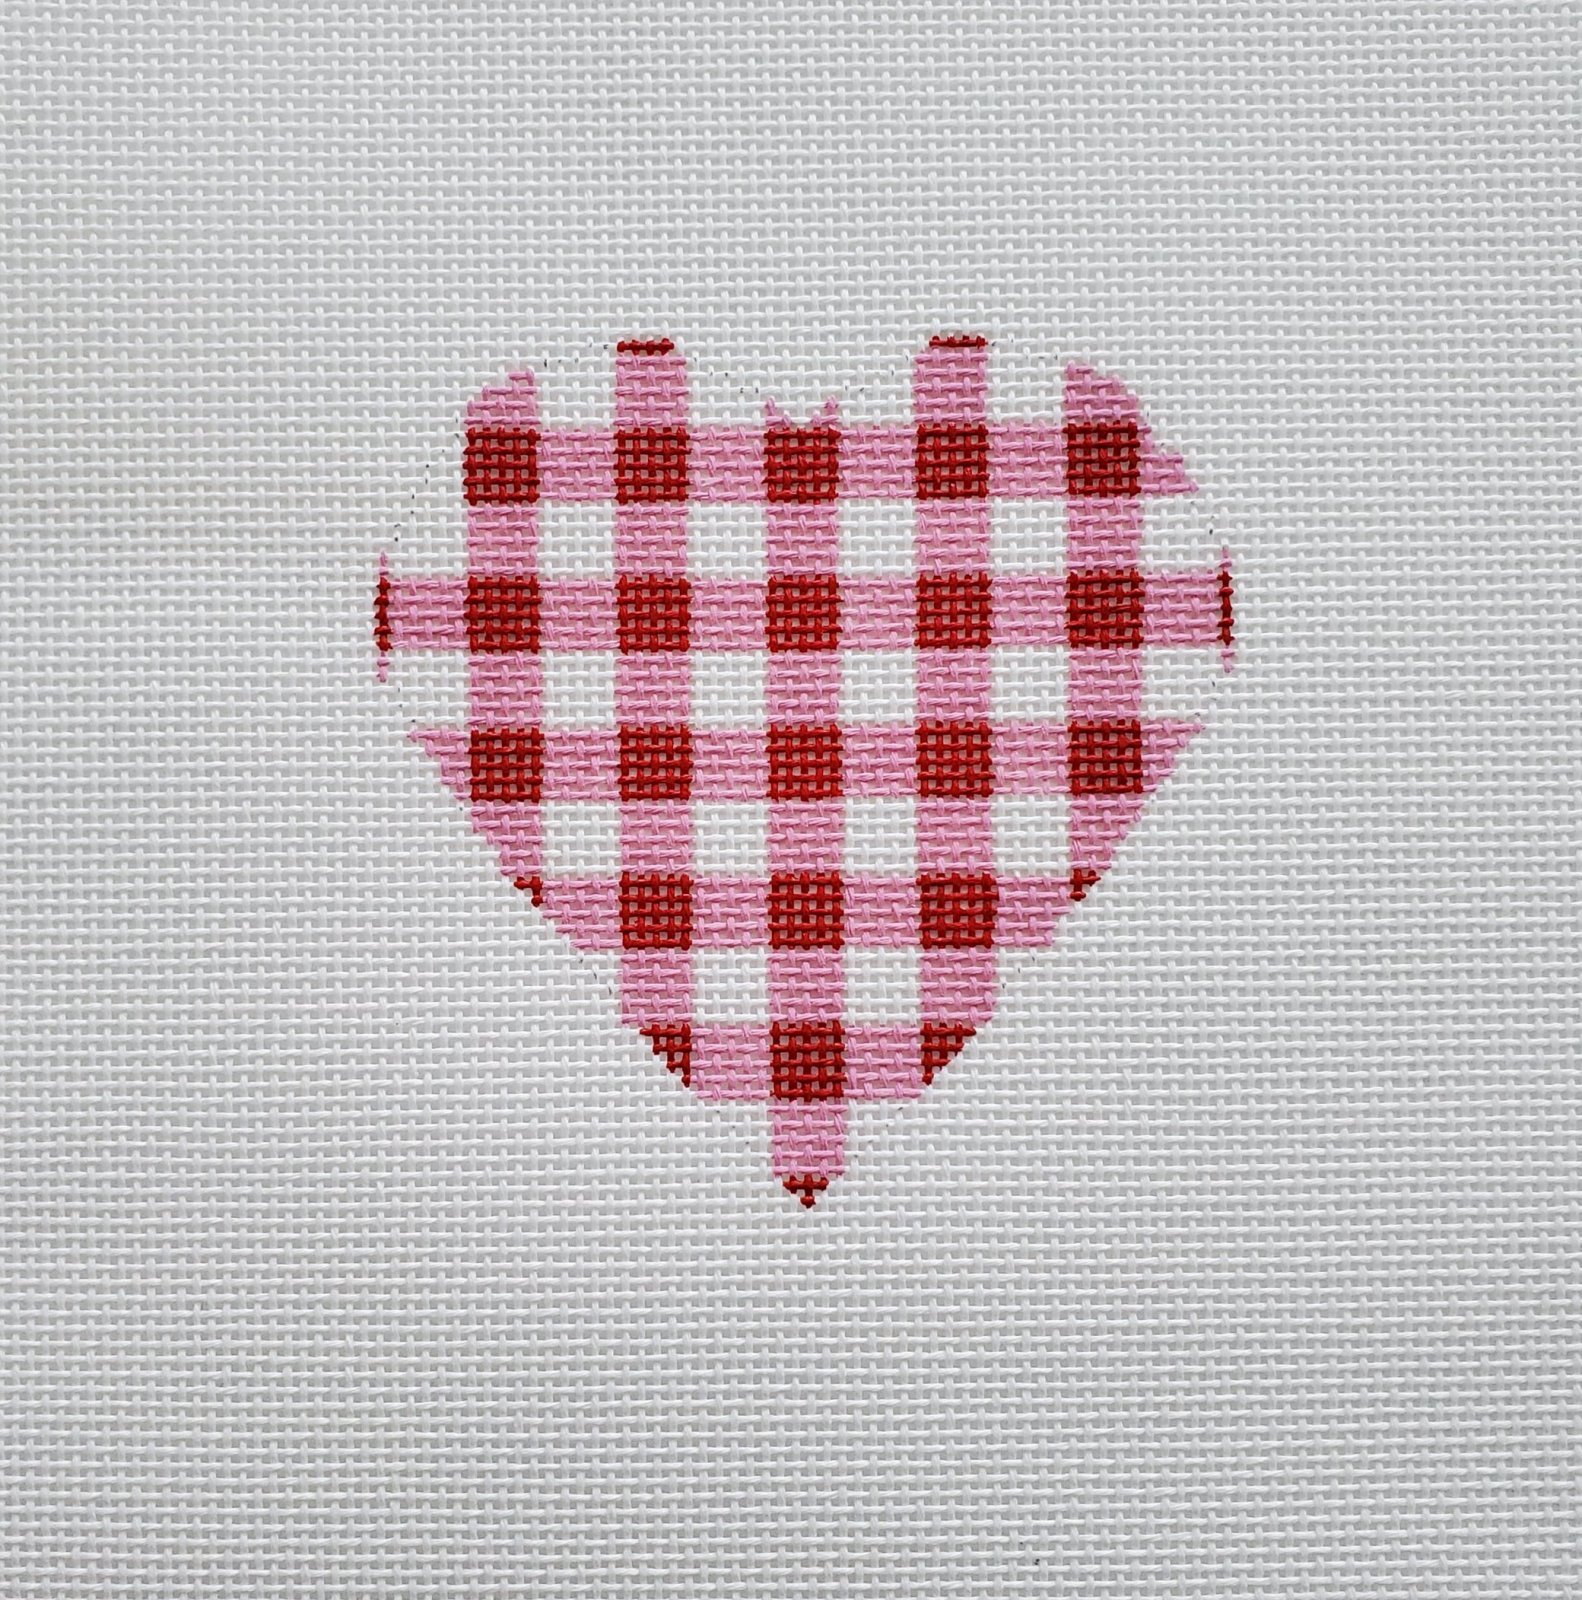 Small Red Gingham Hearts